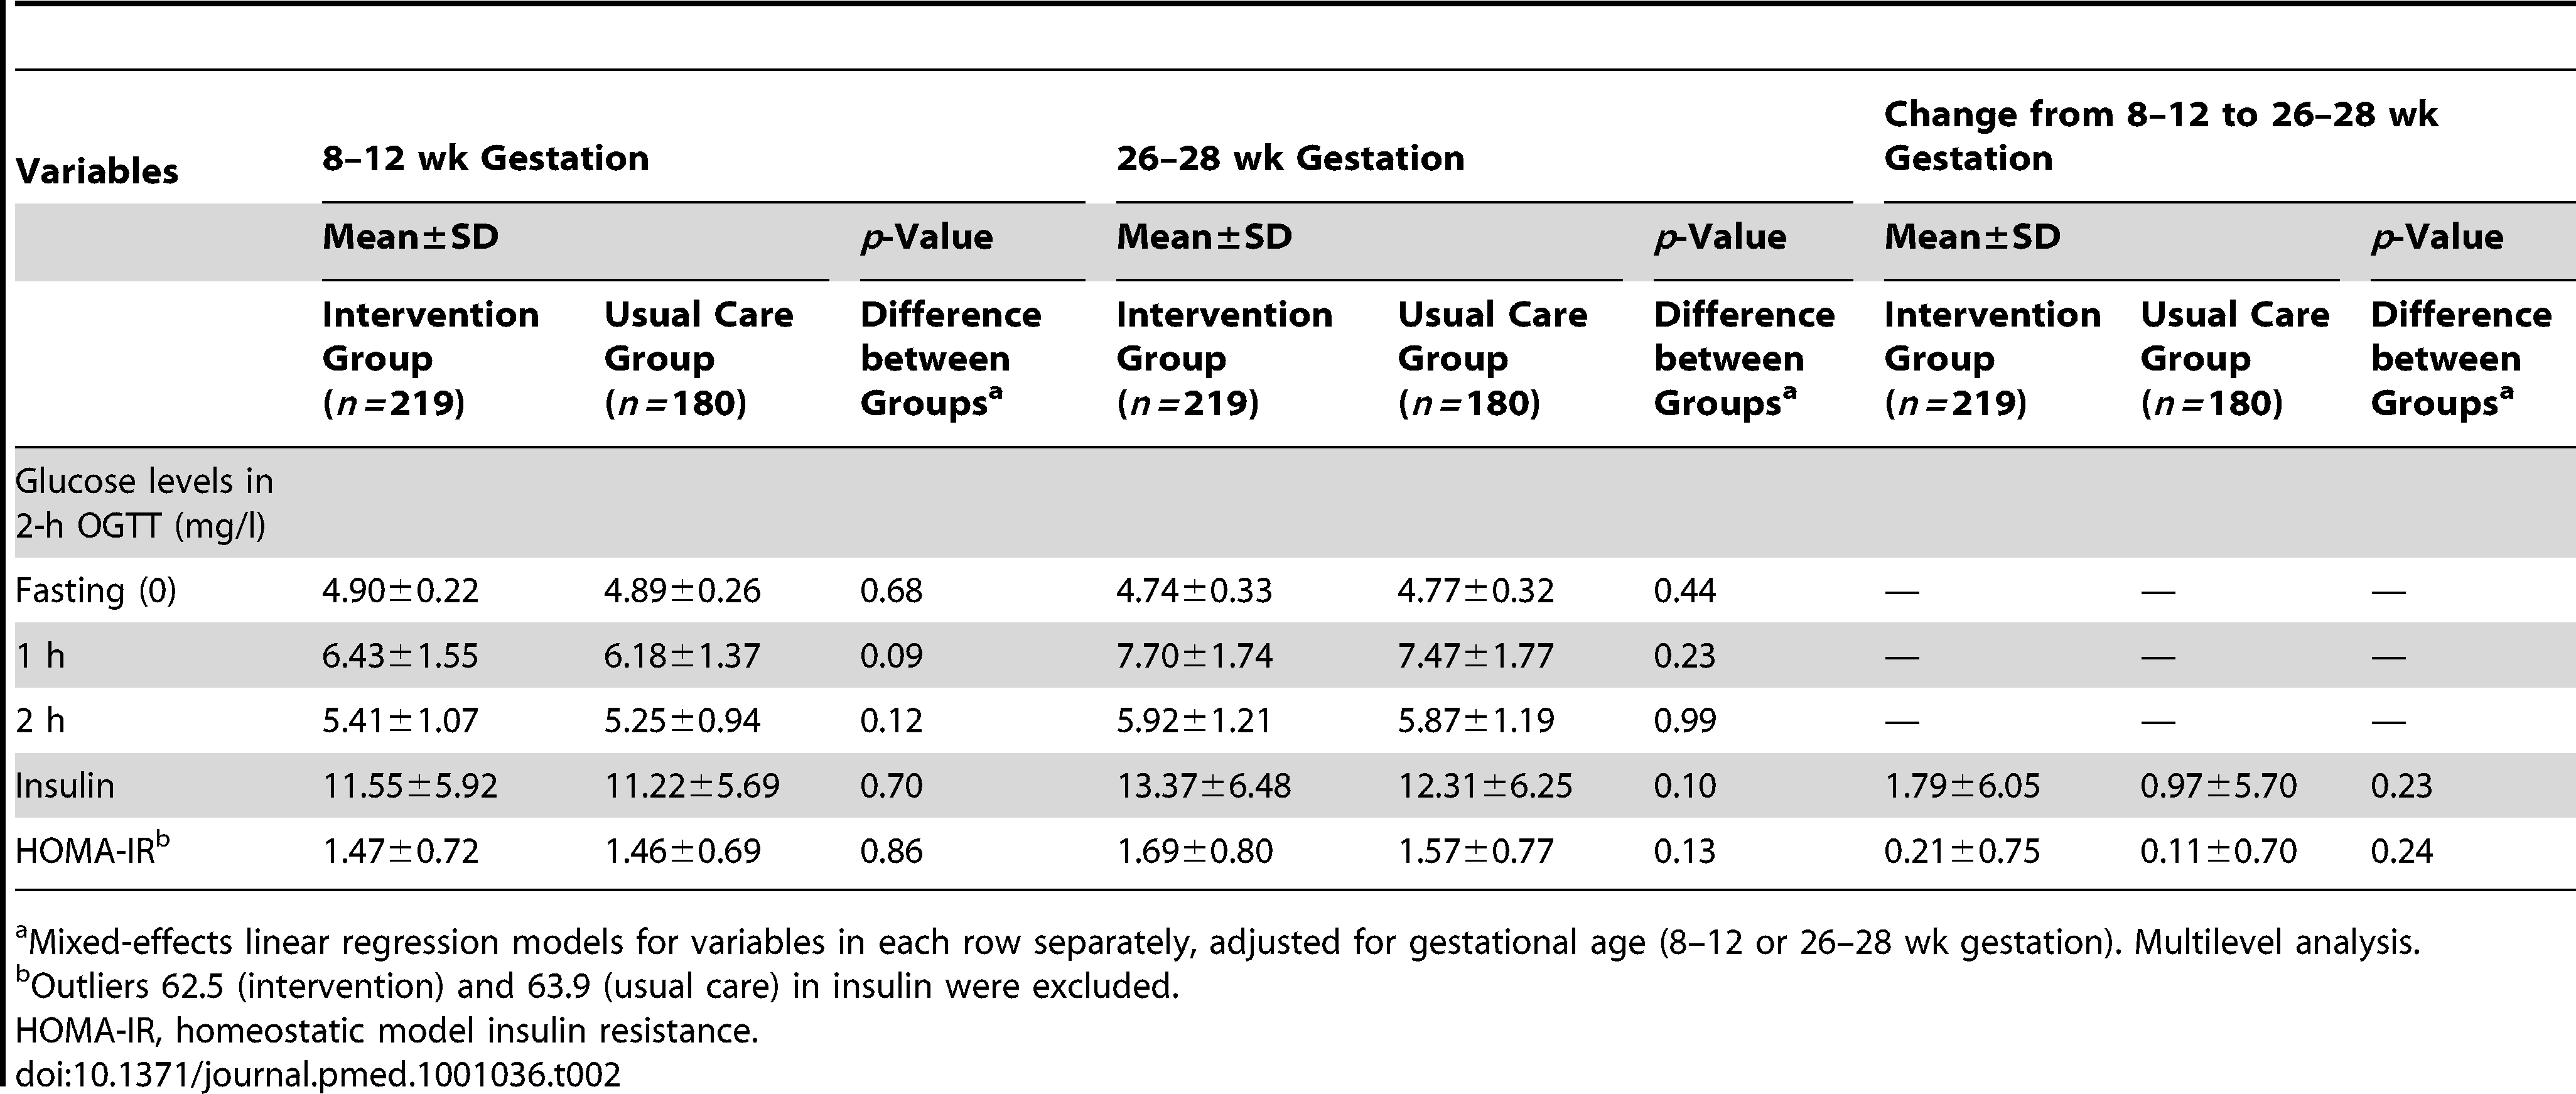 Means and SD for variables related to the OGTT, insulin, and homeostatic model insulin resistance at 8–12 and 26–28 wk gestation.